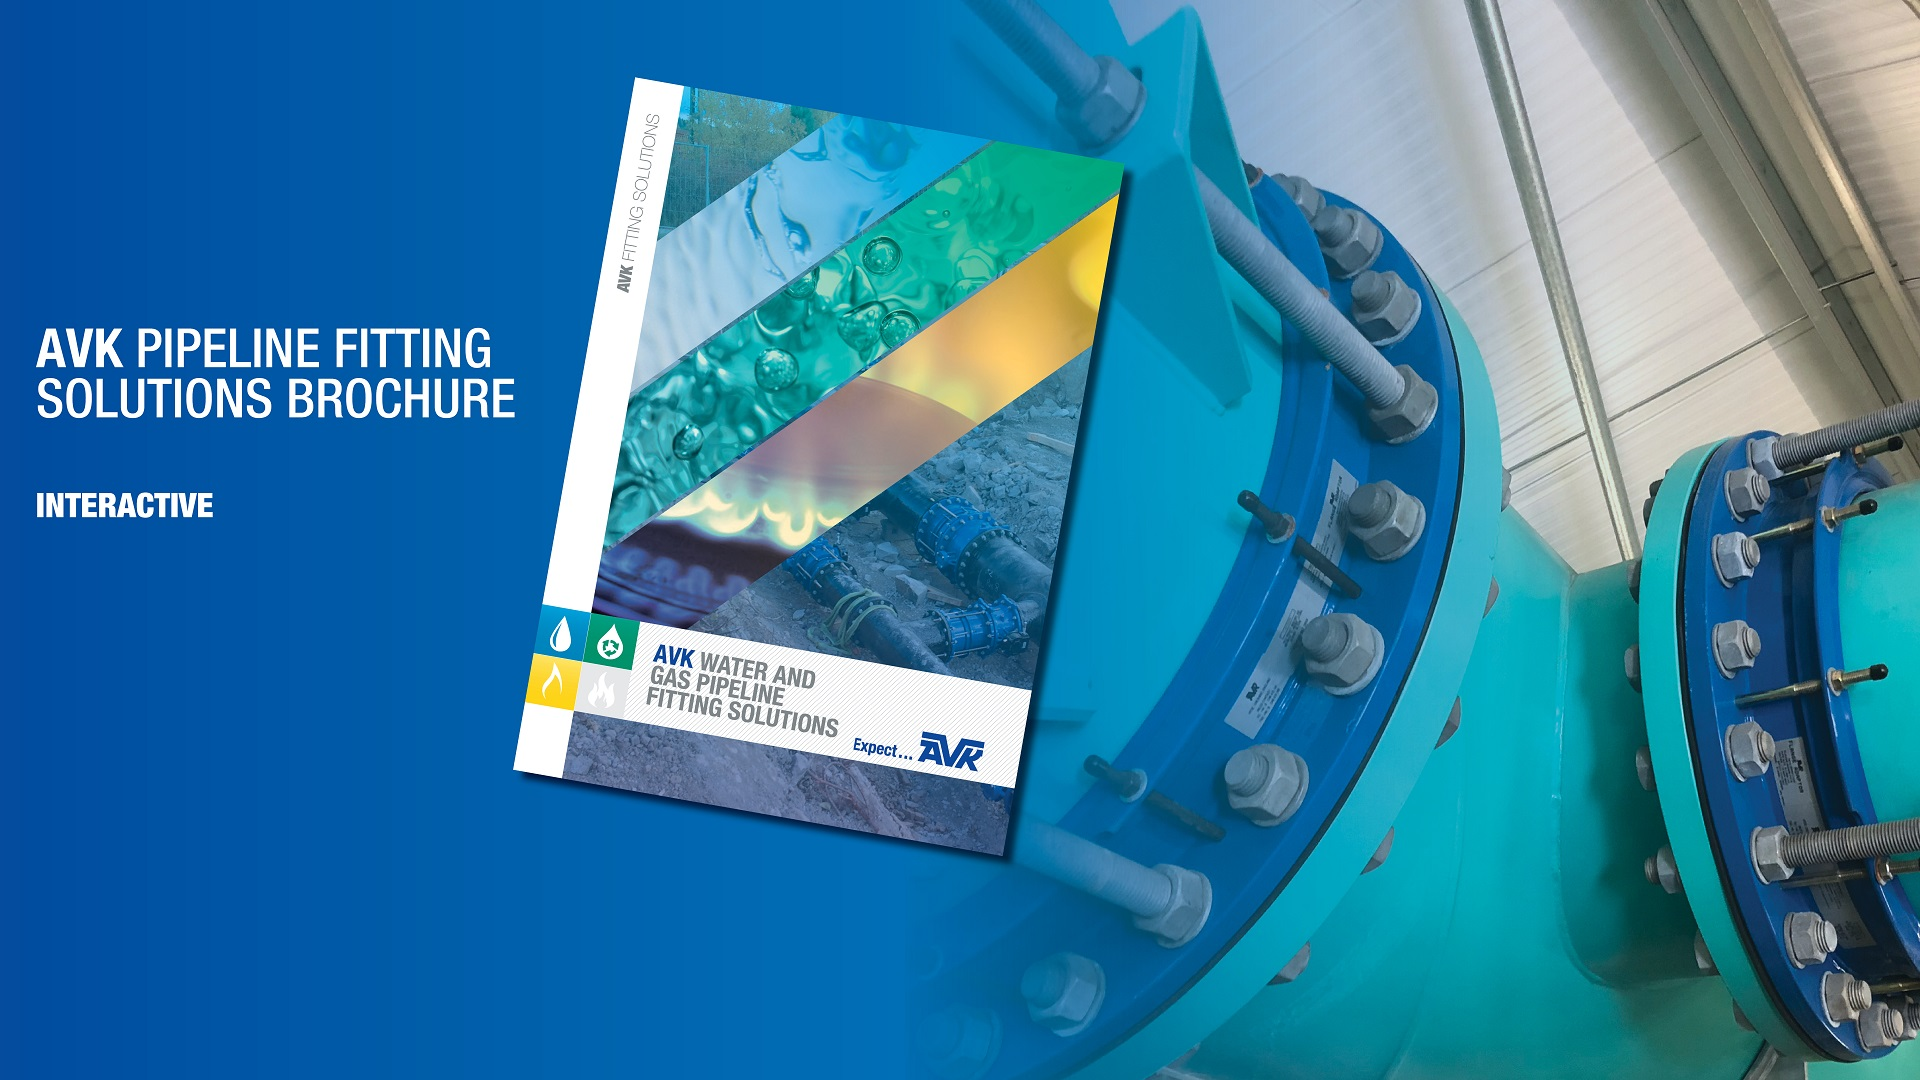 AVK  Pipeline Fitting Solutions Interactive Brochure